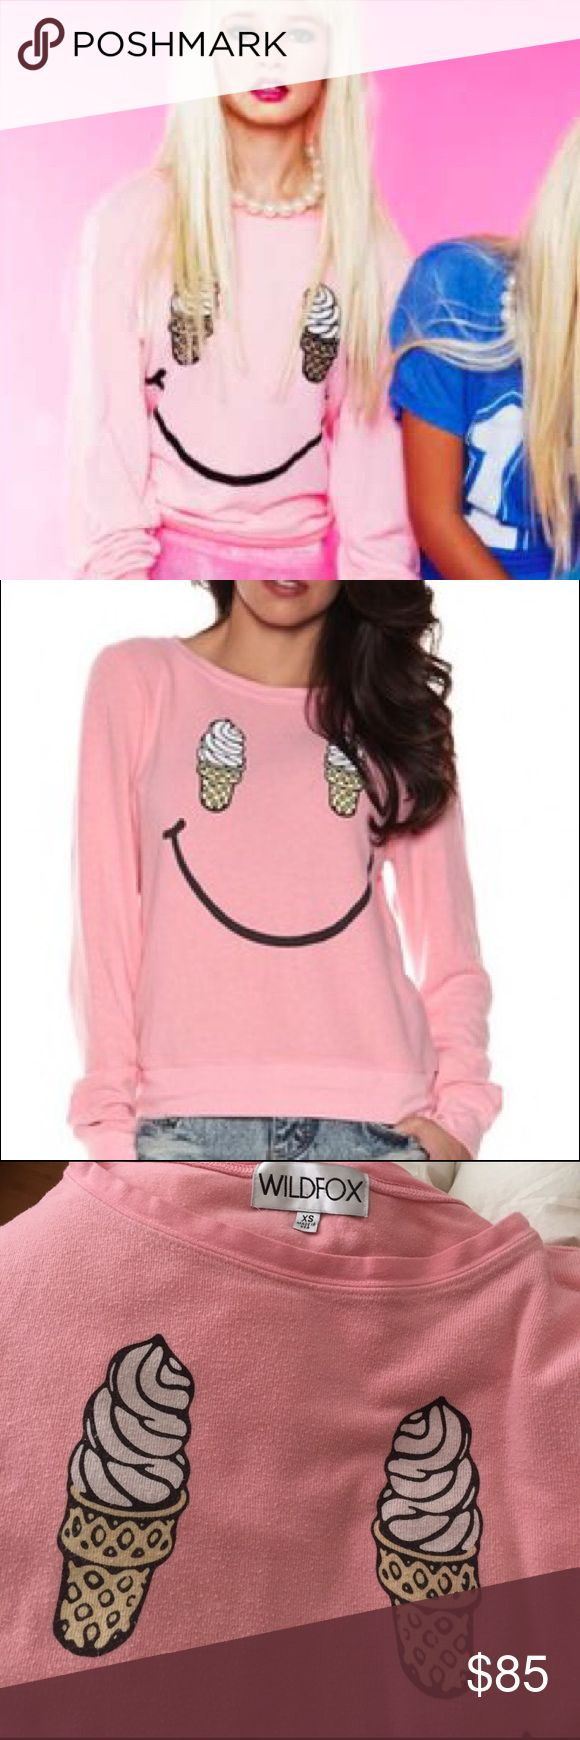 Wildfox Soft Serve Smile Ice Cream Jumper Sweater This is a Wildfox soft serve 🍦 smile ice cream jumper. Pink crew neck long sleeve. Made of rayon and polyester. Size extra small. Oversized fit. Mint condition and sold out everywhere. Wildfox Sweaters Crew & Scoop Necks